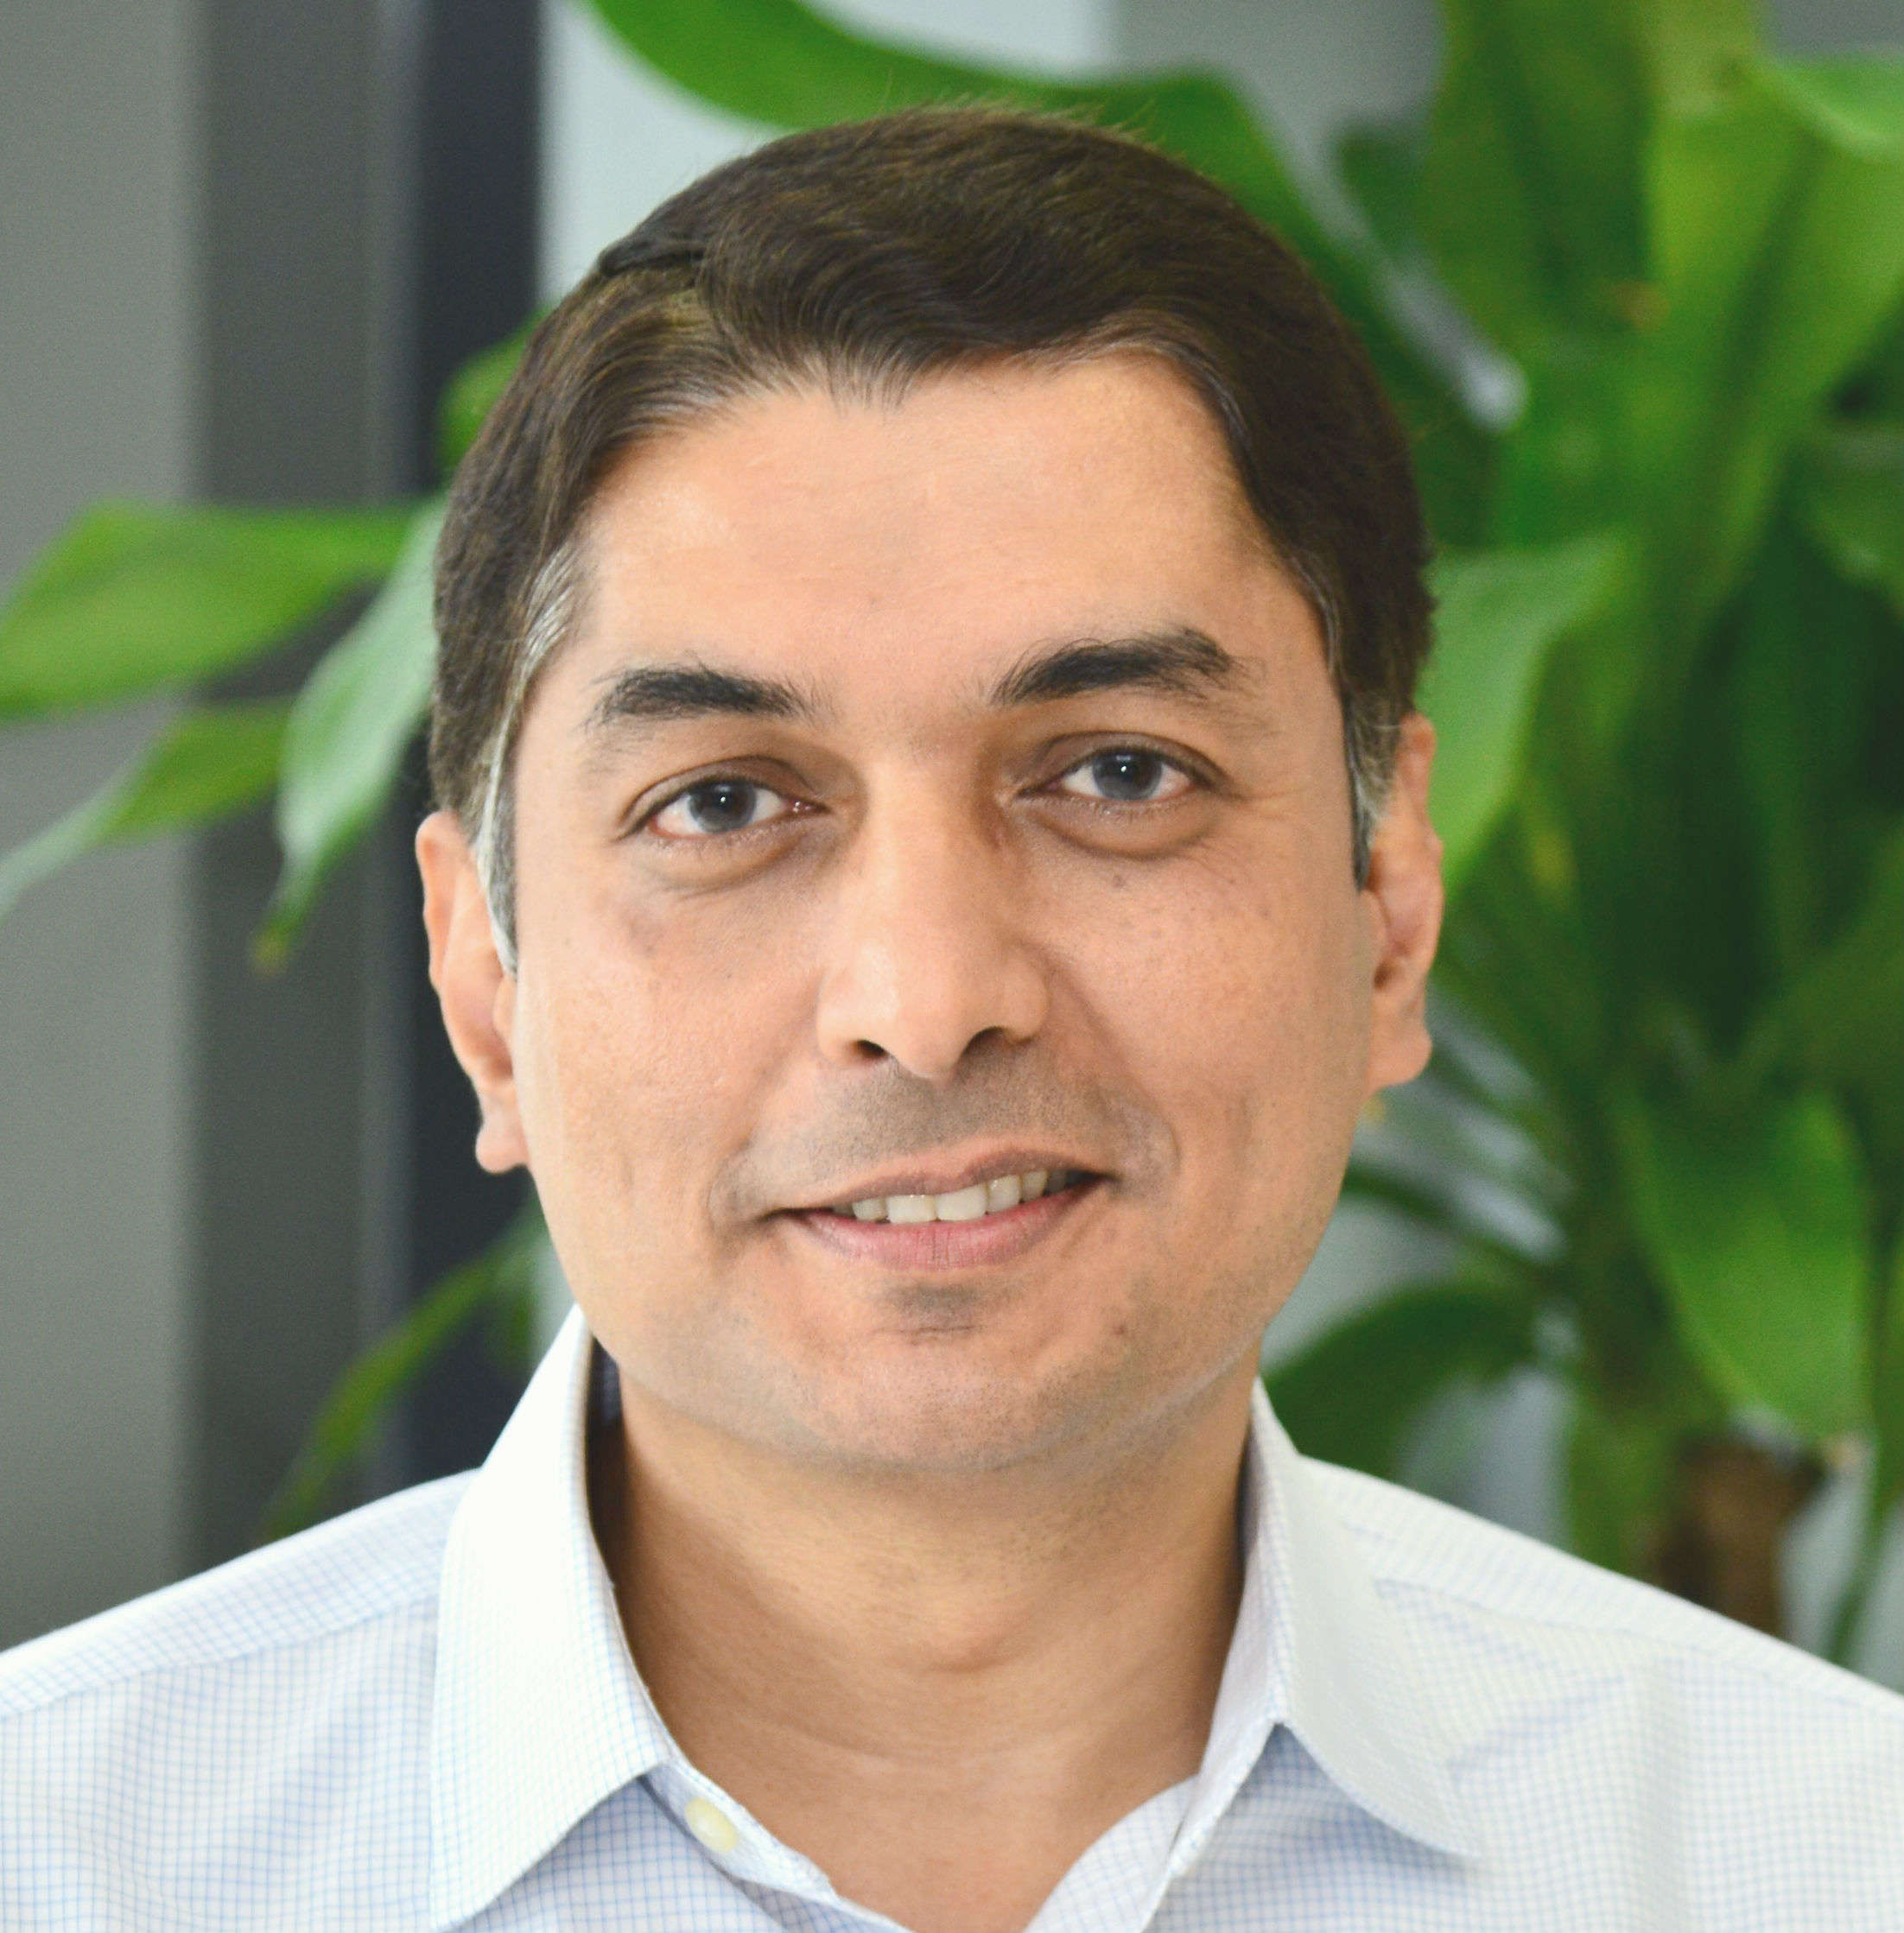 Medtronic aims at changing lives through innovation : Madan Krishnan